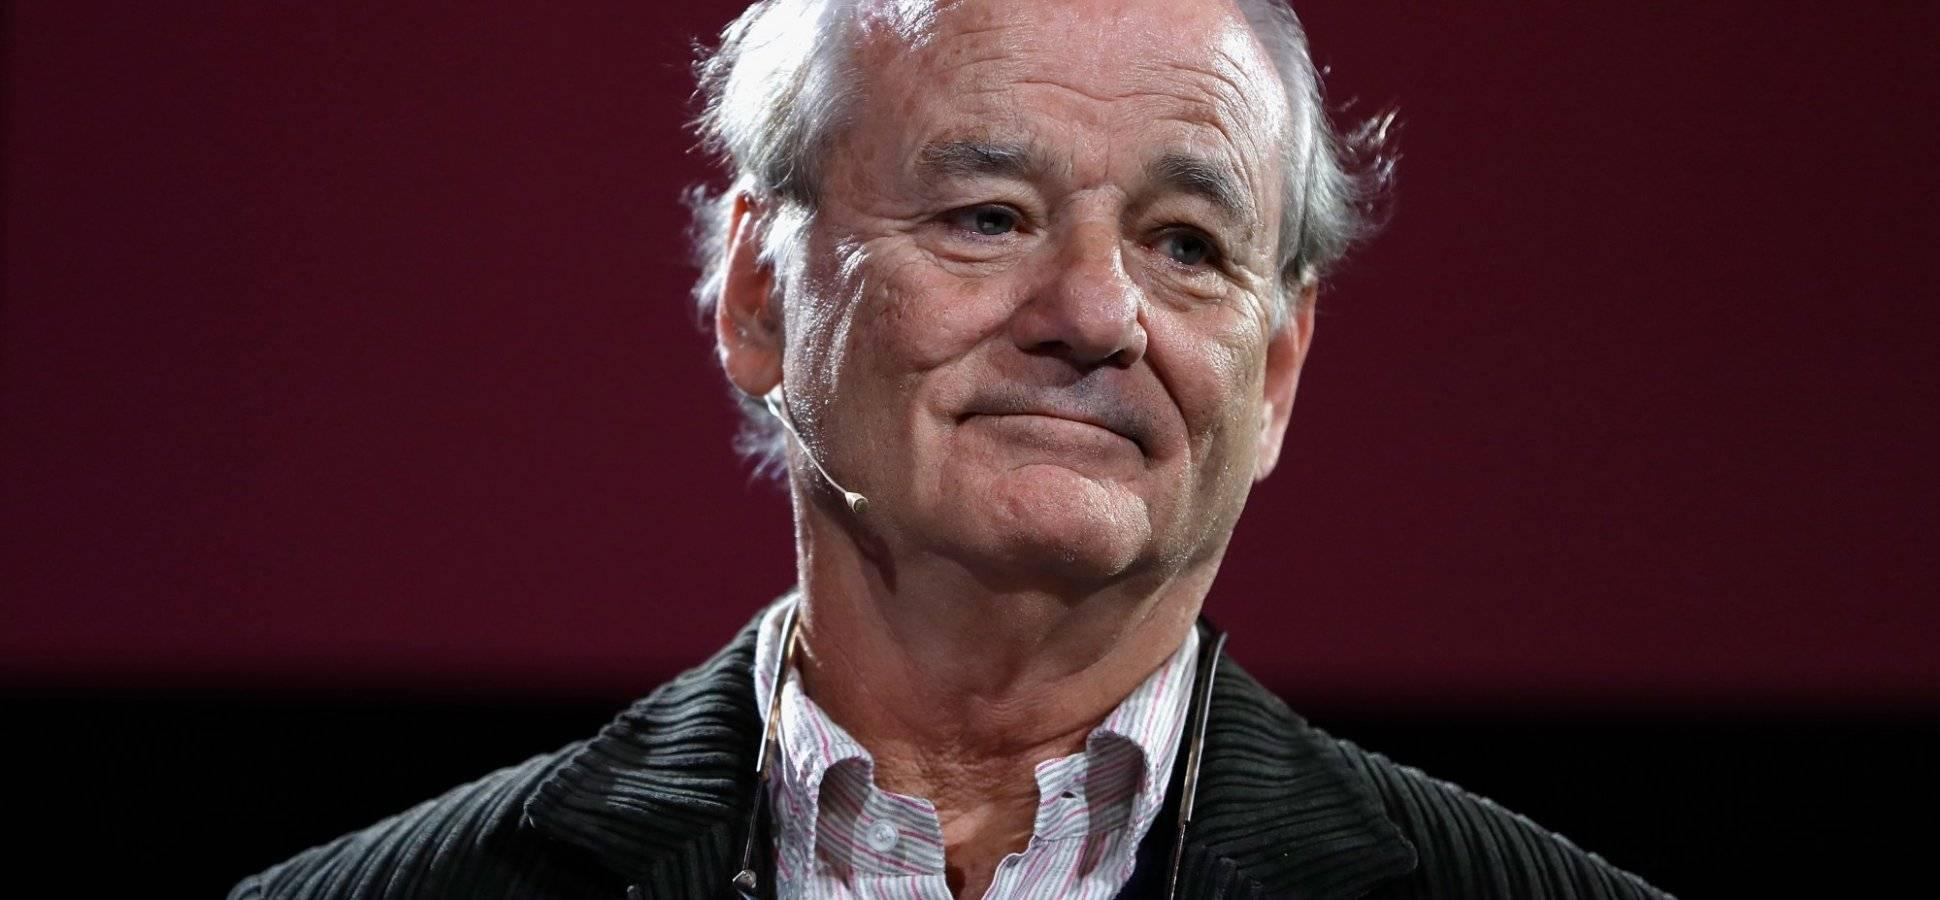 Bill Murray pide trabajo de mesero en un P.F. Chang